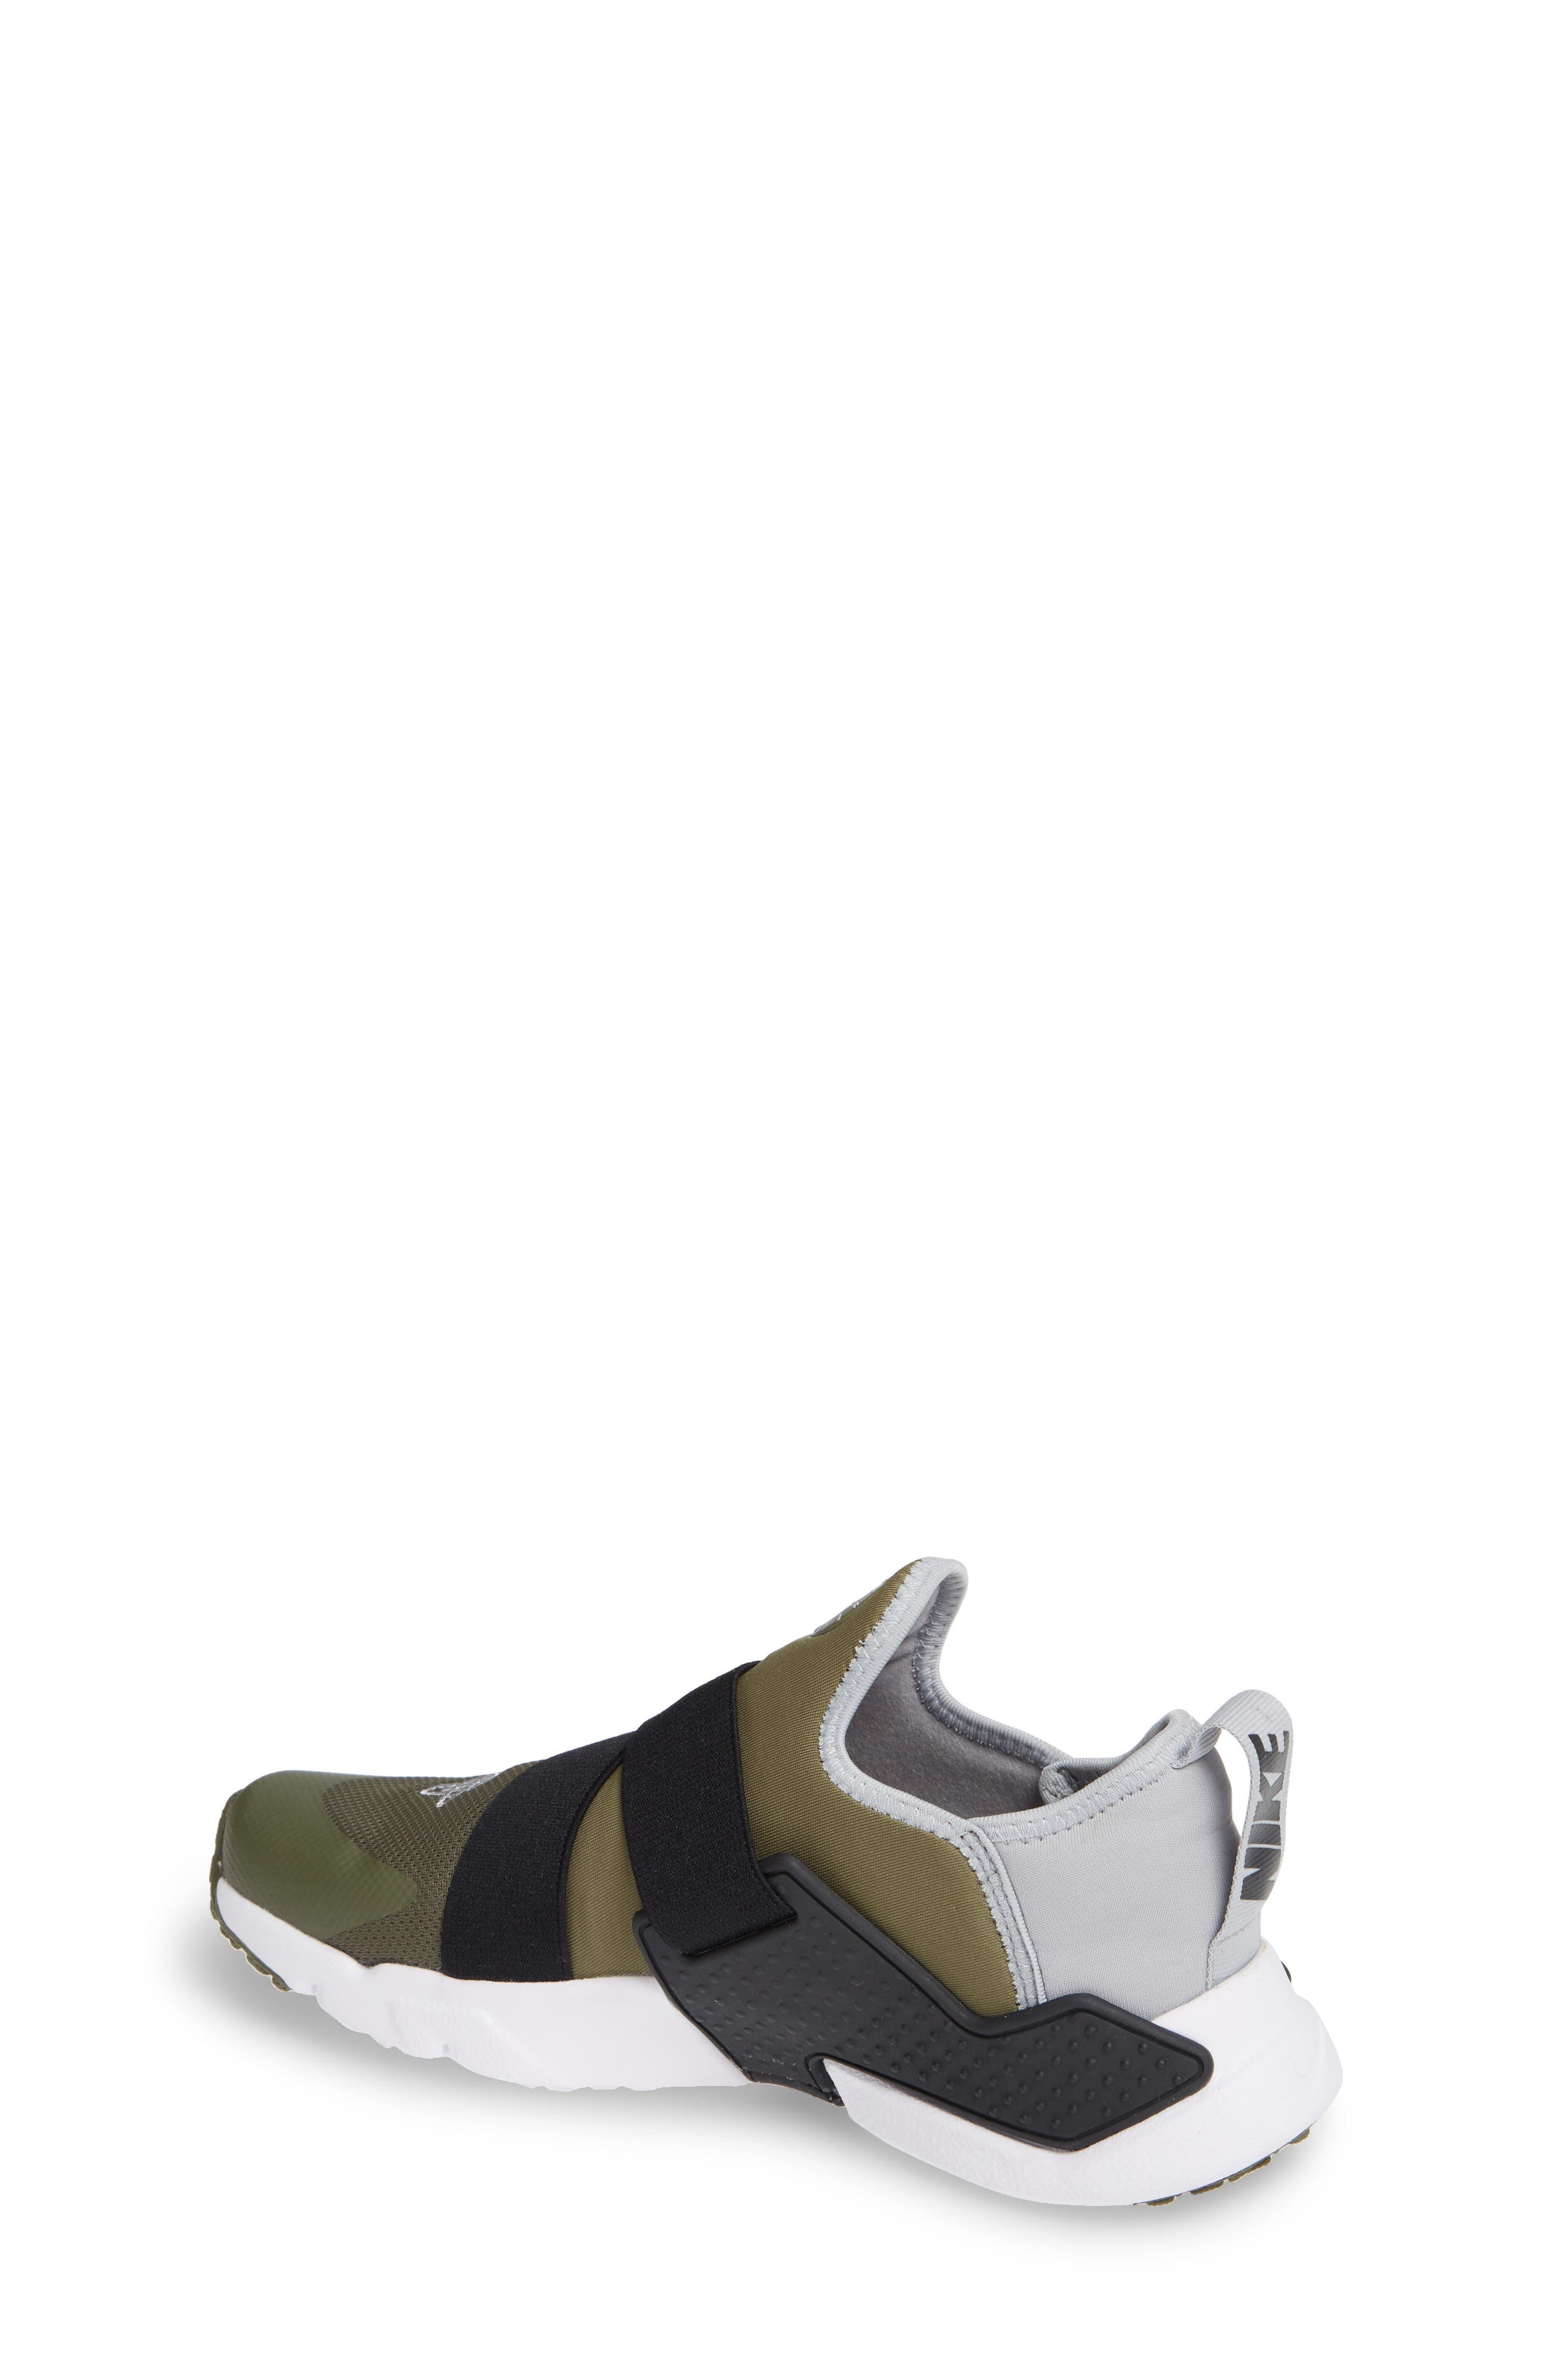 Huarache Extreme Sneaker,                             Alternate thumbnail 2, color,                             OLIVE/ WOLF GREY/ BLACK/ WHITE